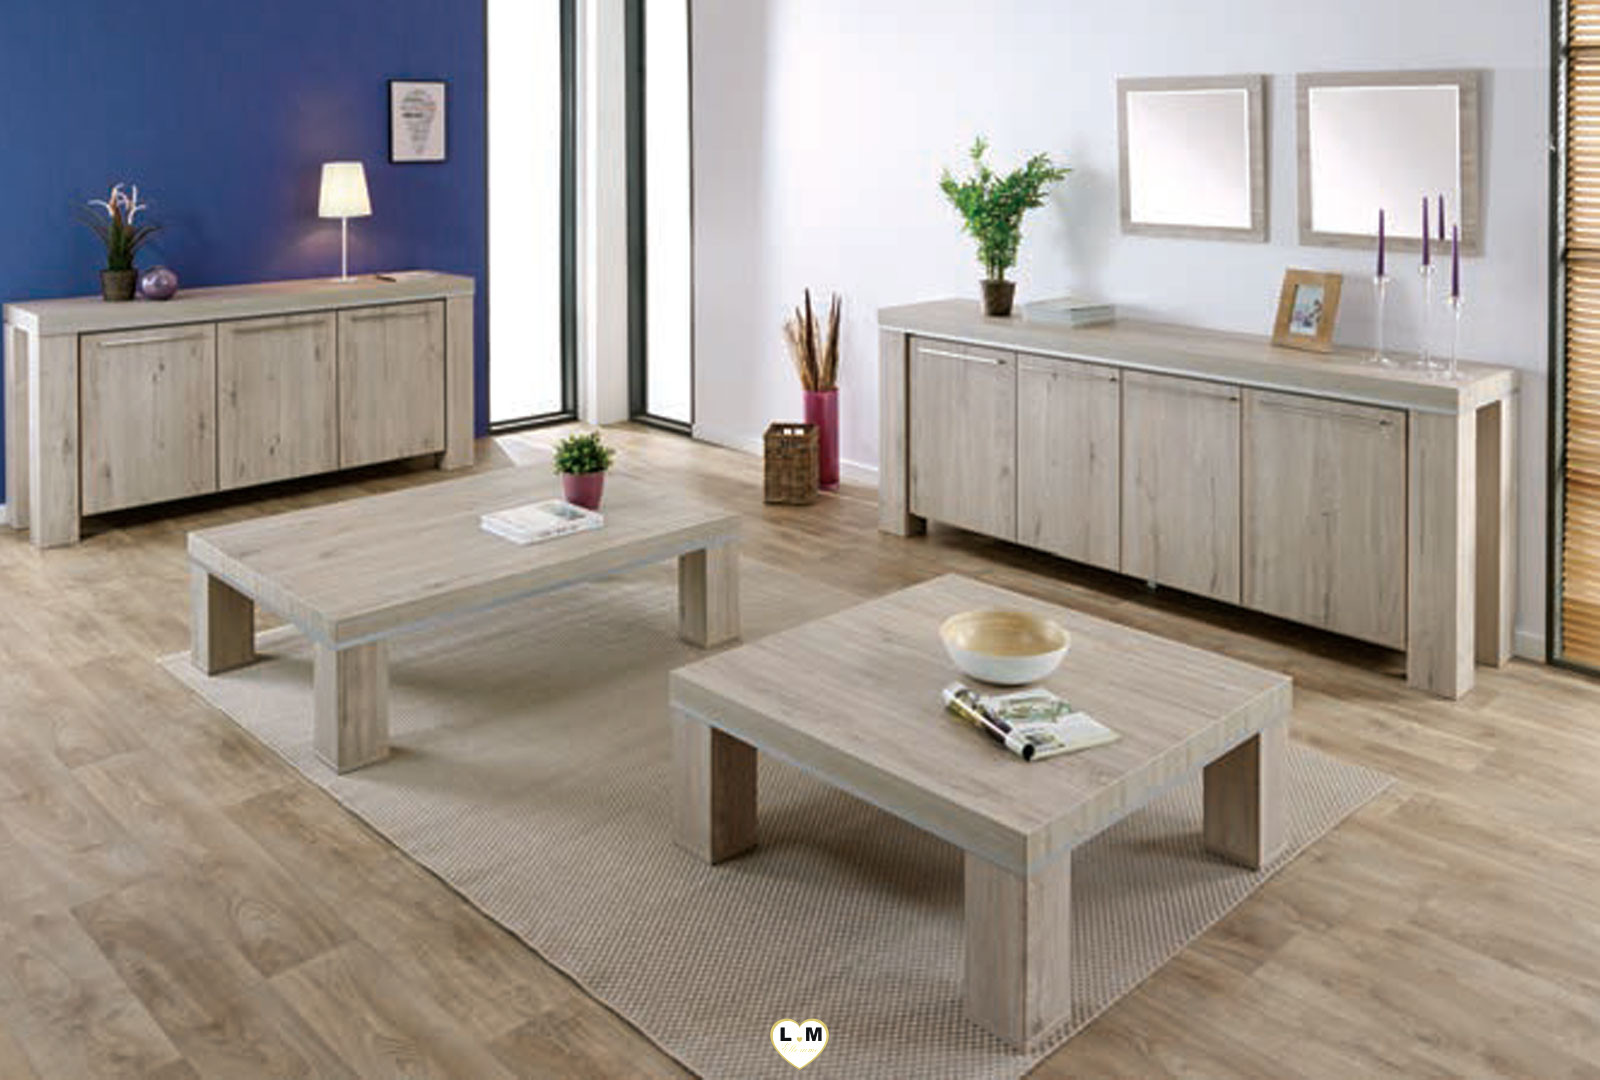 malaga chene gris clair et alu ensemble sejour salle a manger lignemeuble com. Black Bedroom Furniture Sets. Home Design Ideas